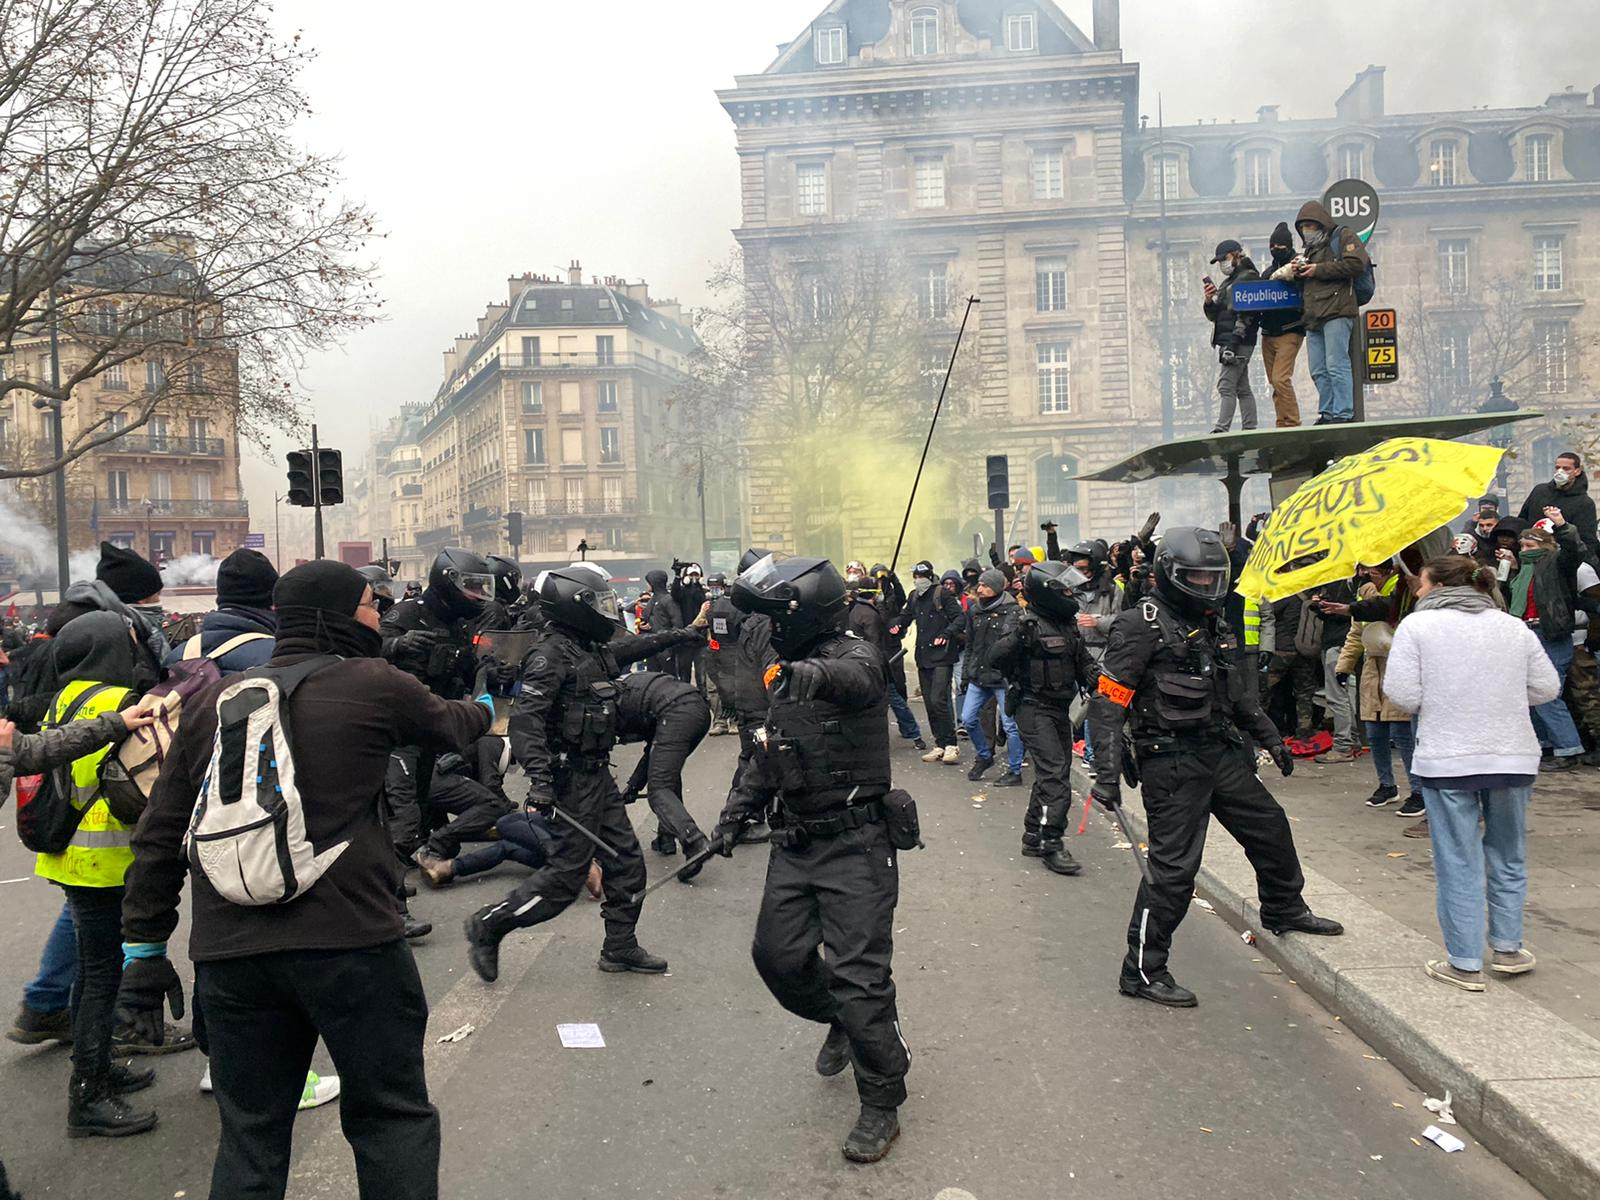 Clashes between police and demonstrators break out.